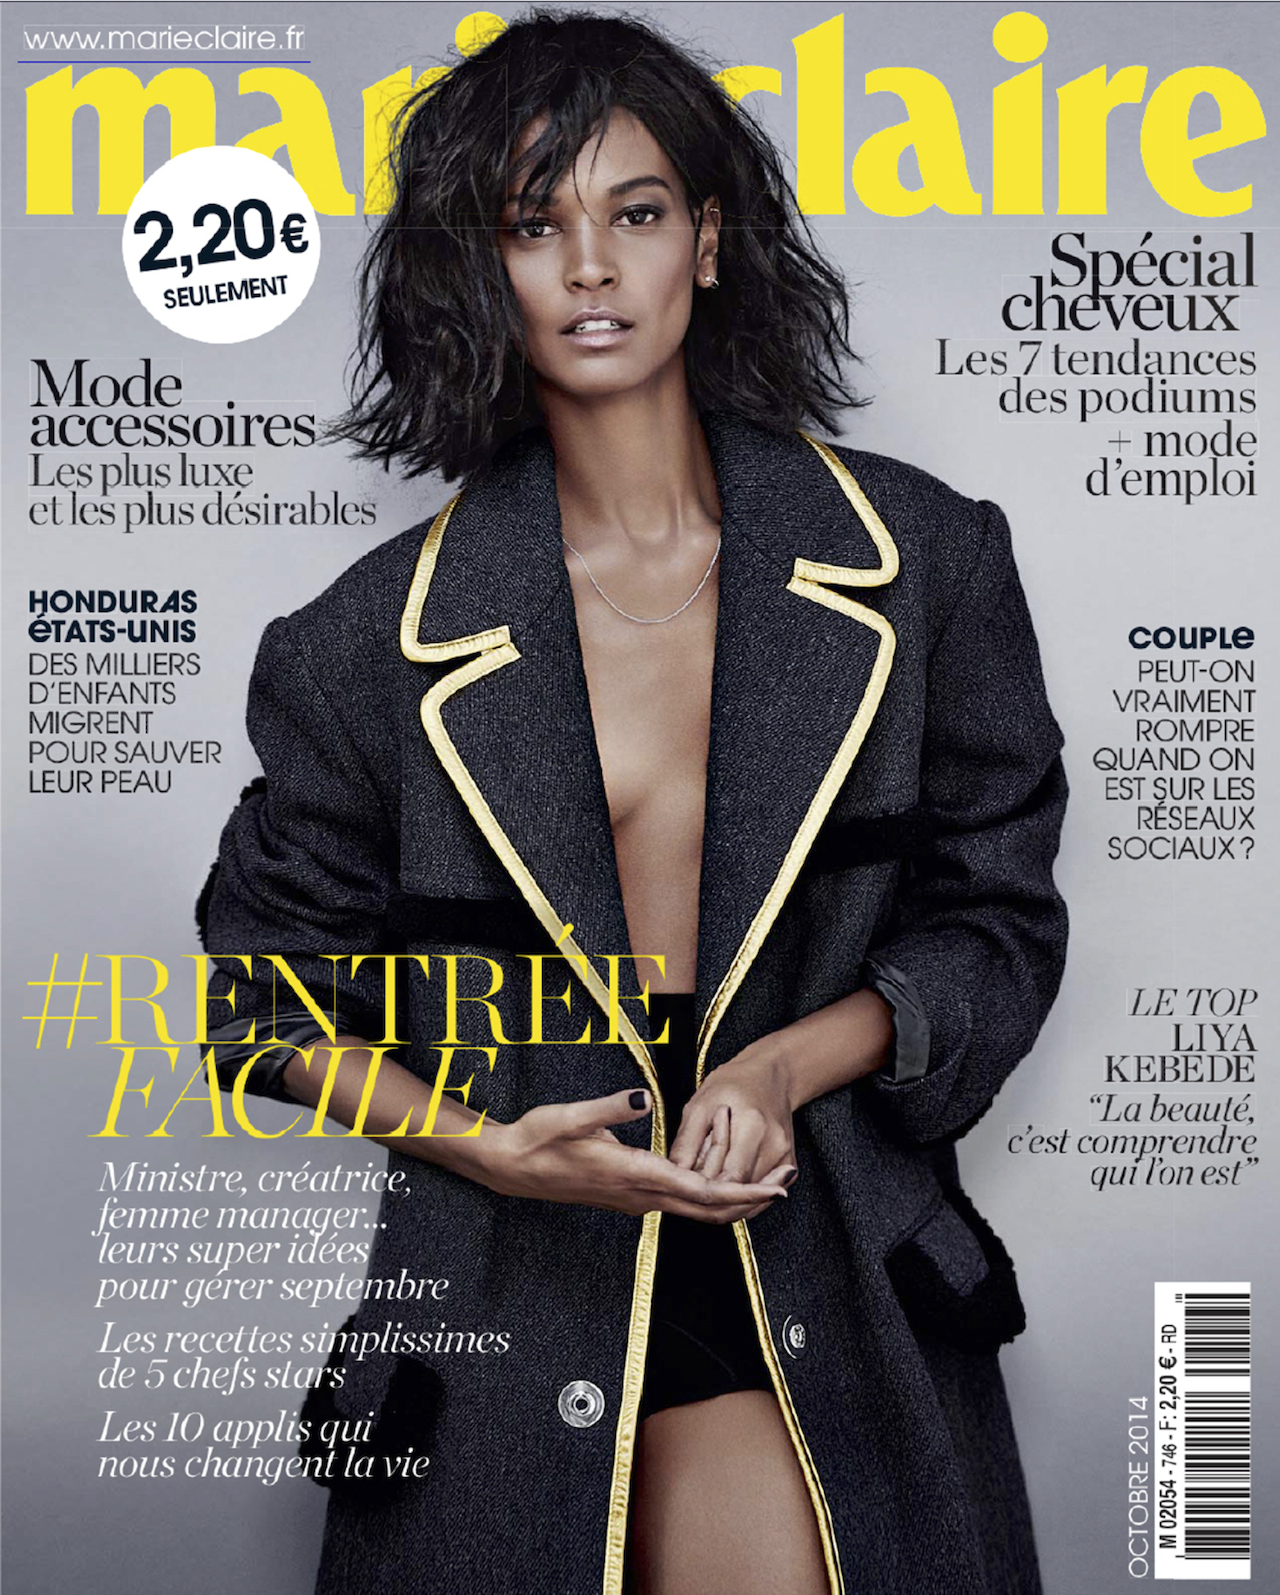 super mod le liya kebede by tiziano magni for marie claire france october 2014 visual. Black Bedroom Furniture Sets. Home Design Ideas